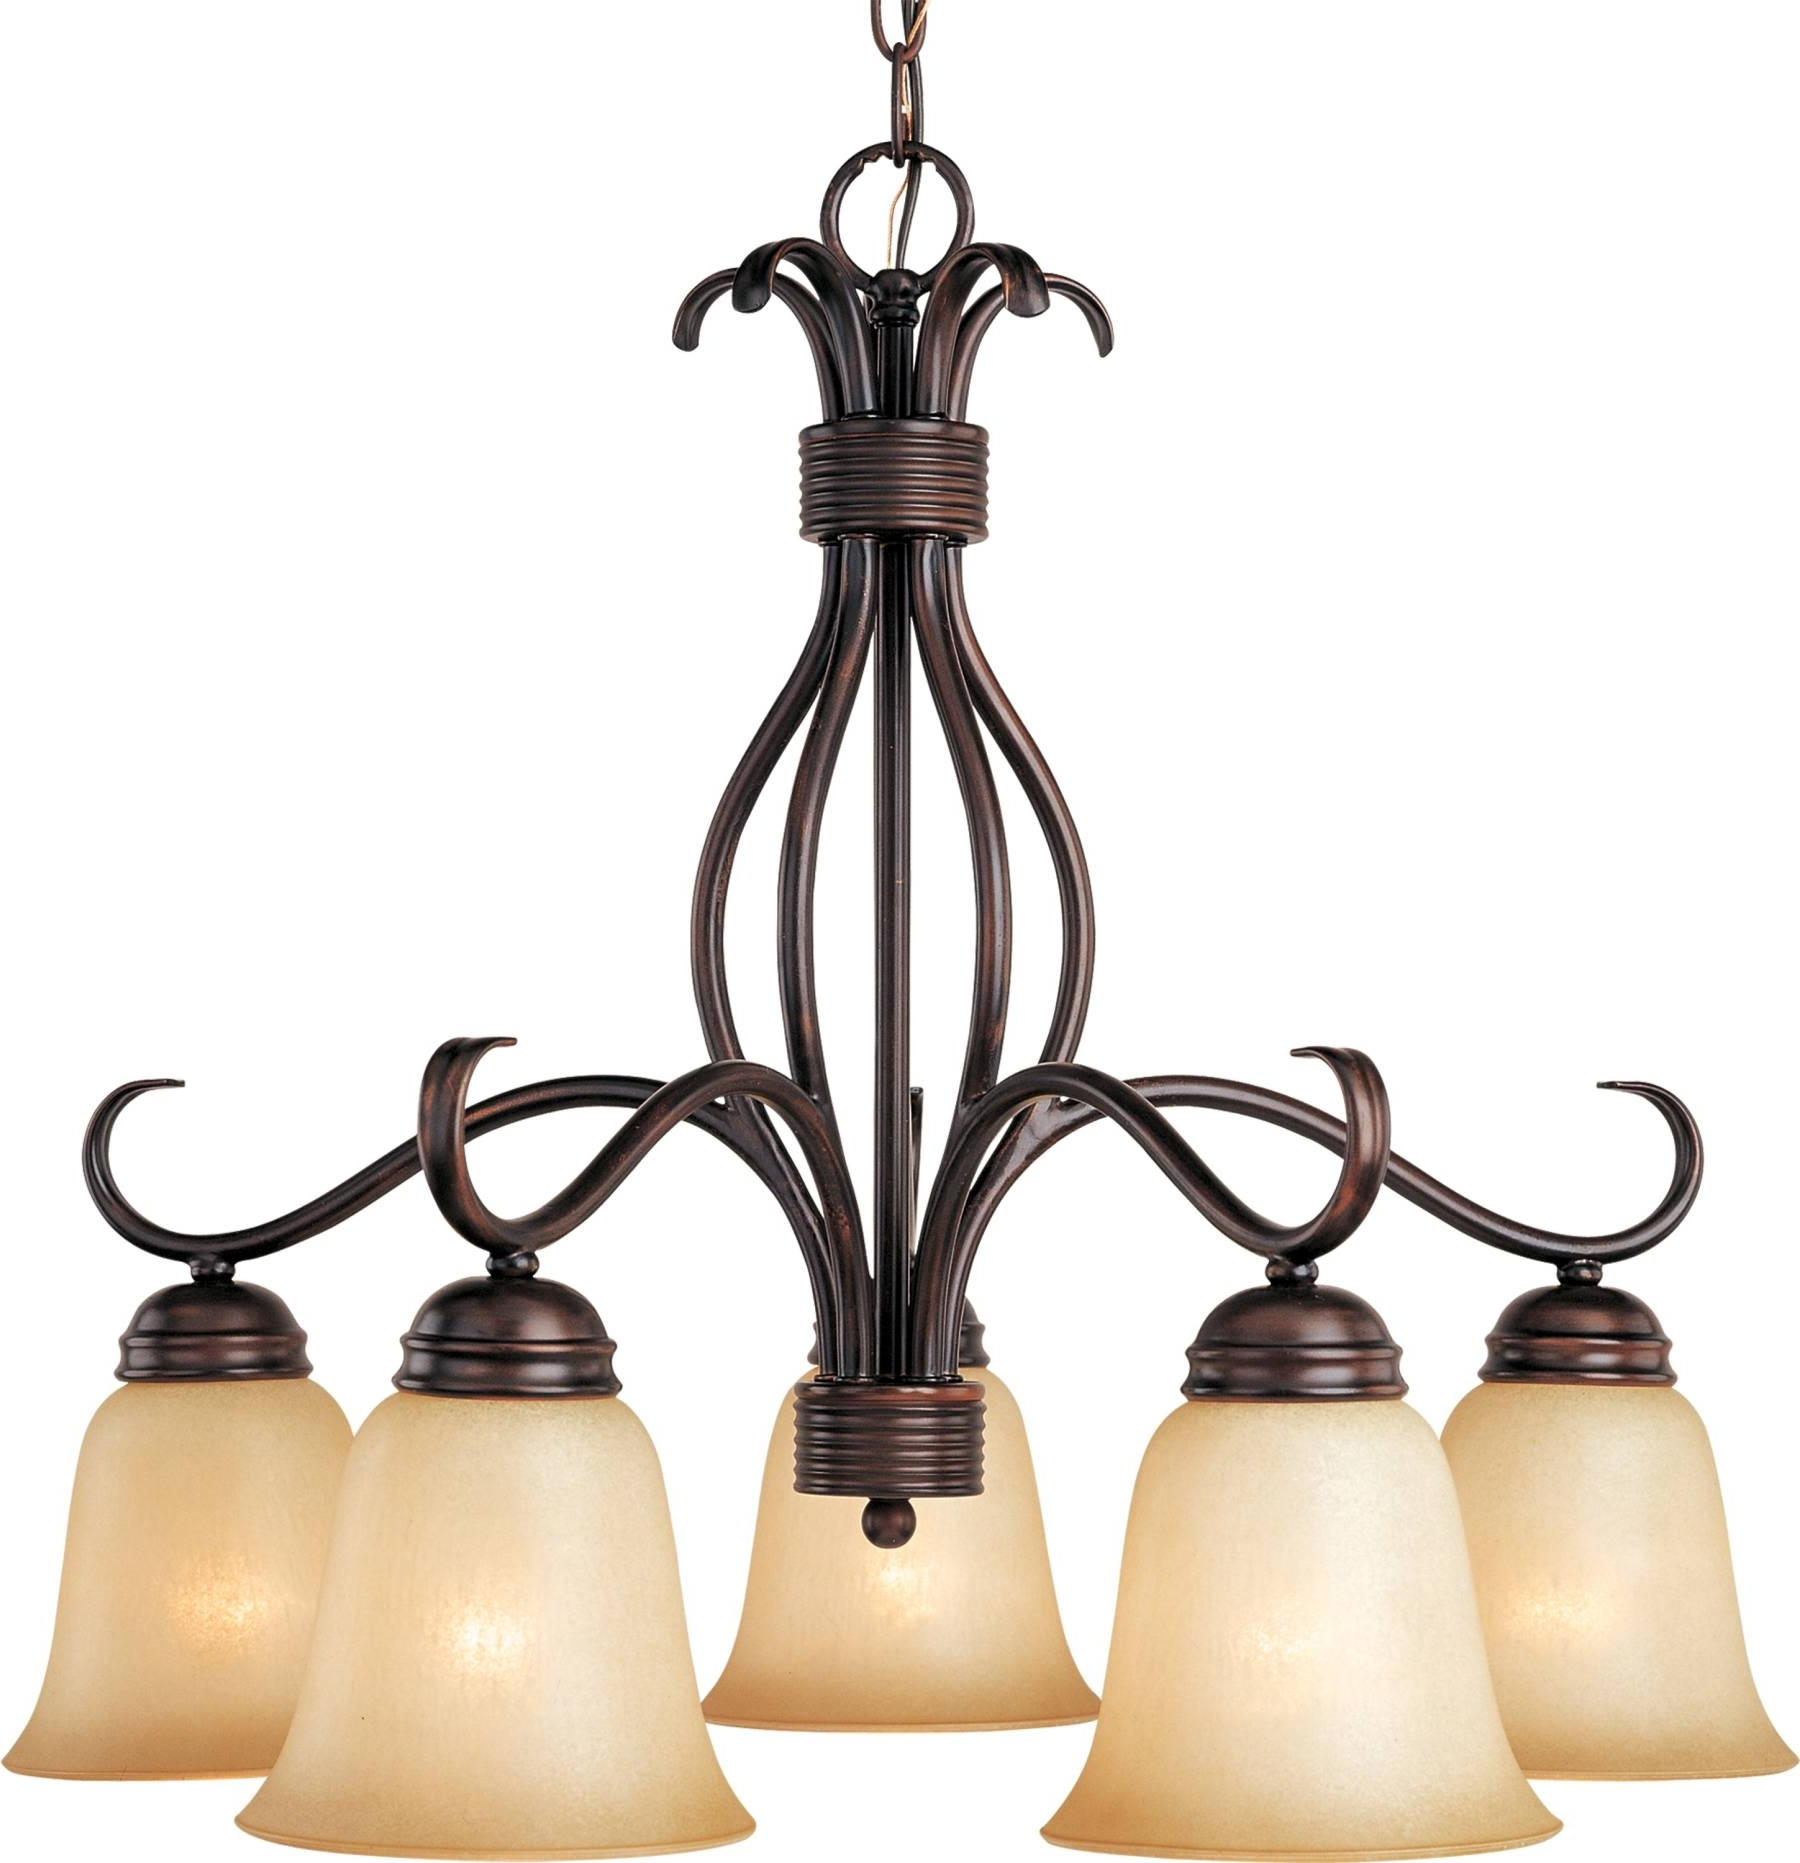 Widely Used Old And Vintage Hanging Cast Iron Chandeliers With White Five Throughout Black Iron Chandeliers (View 17 of 20)